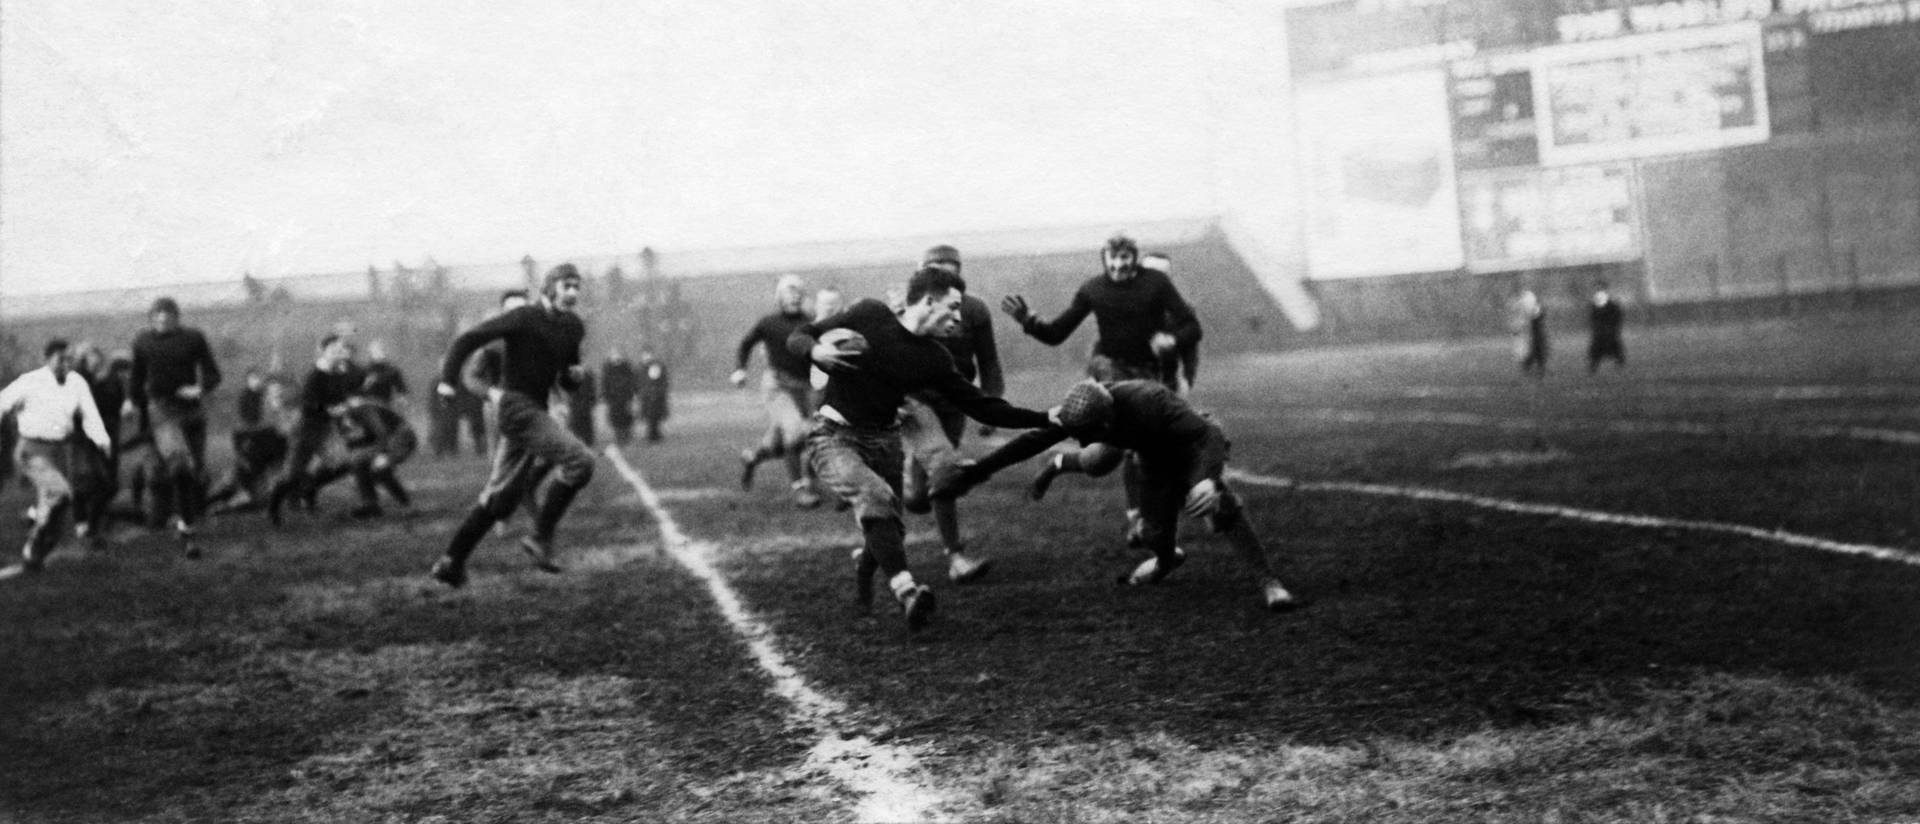 1920s football players during a game